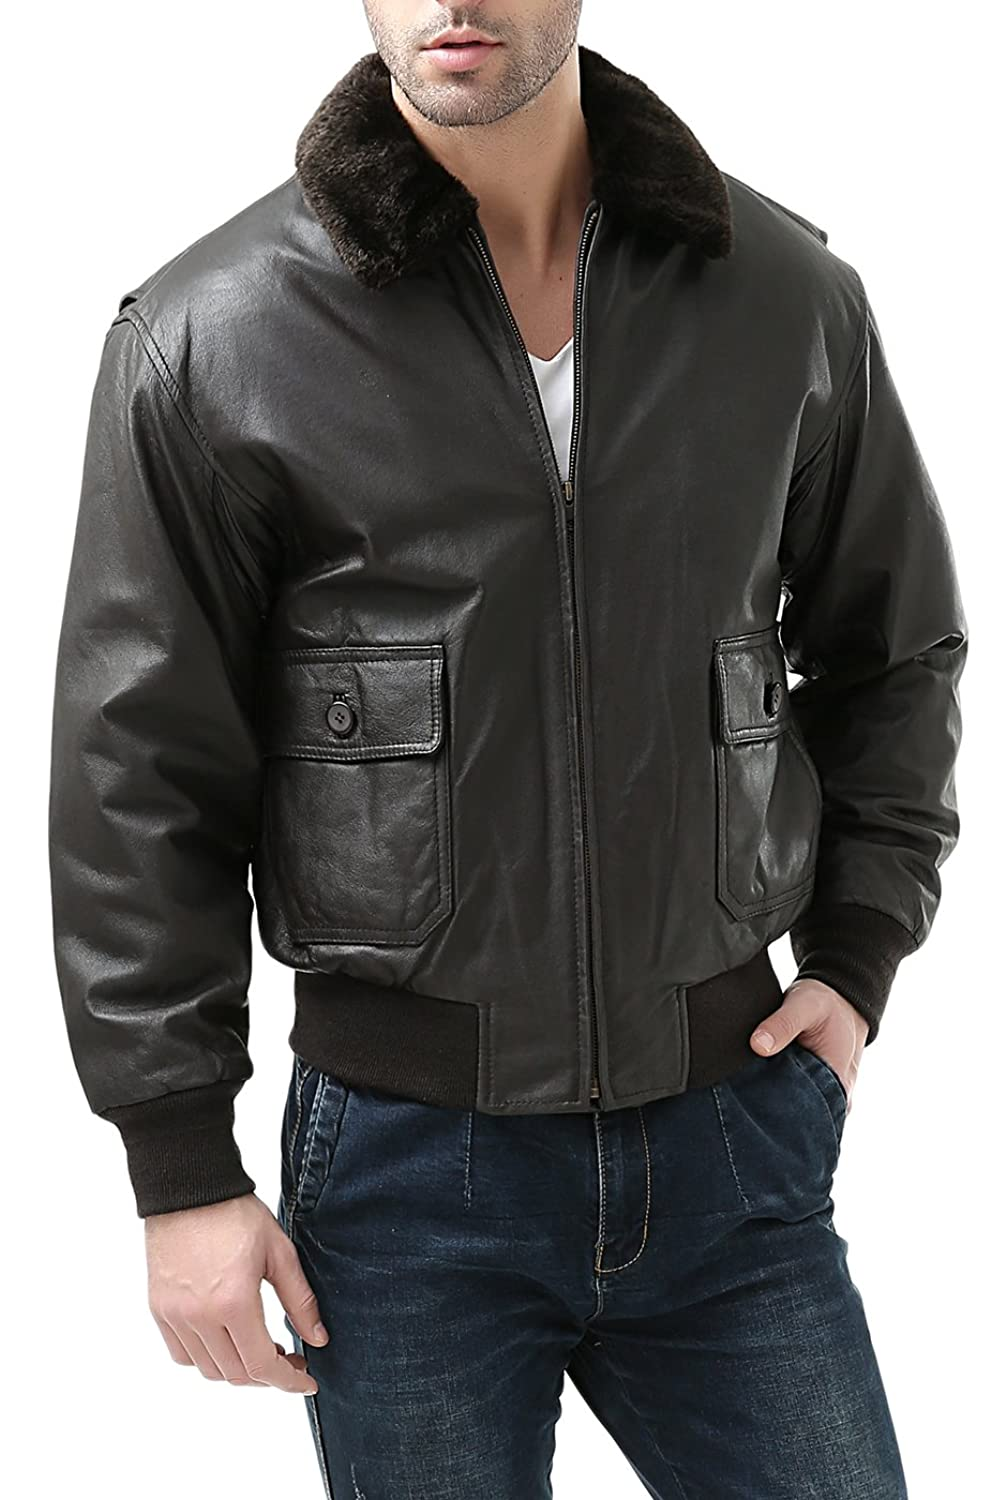 Navy leather flight jackets